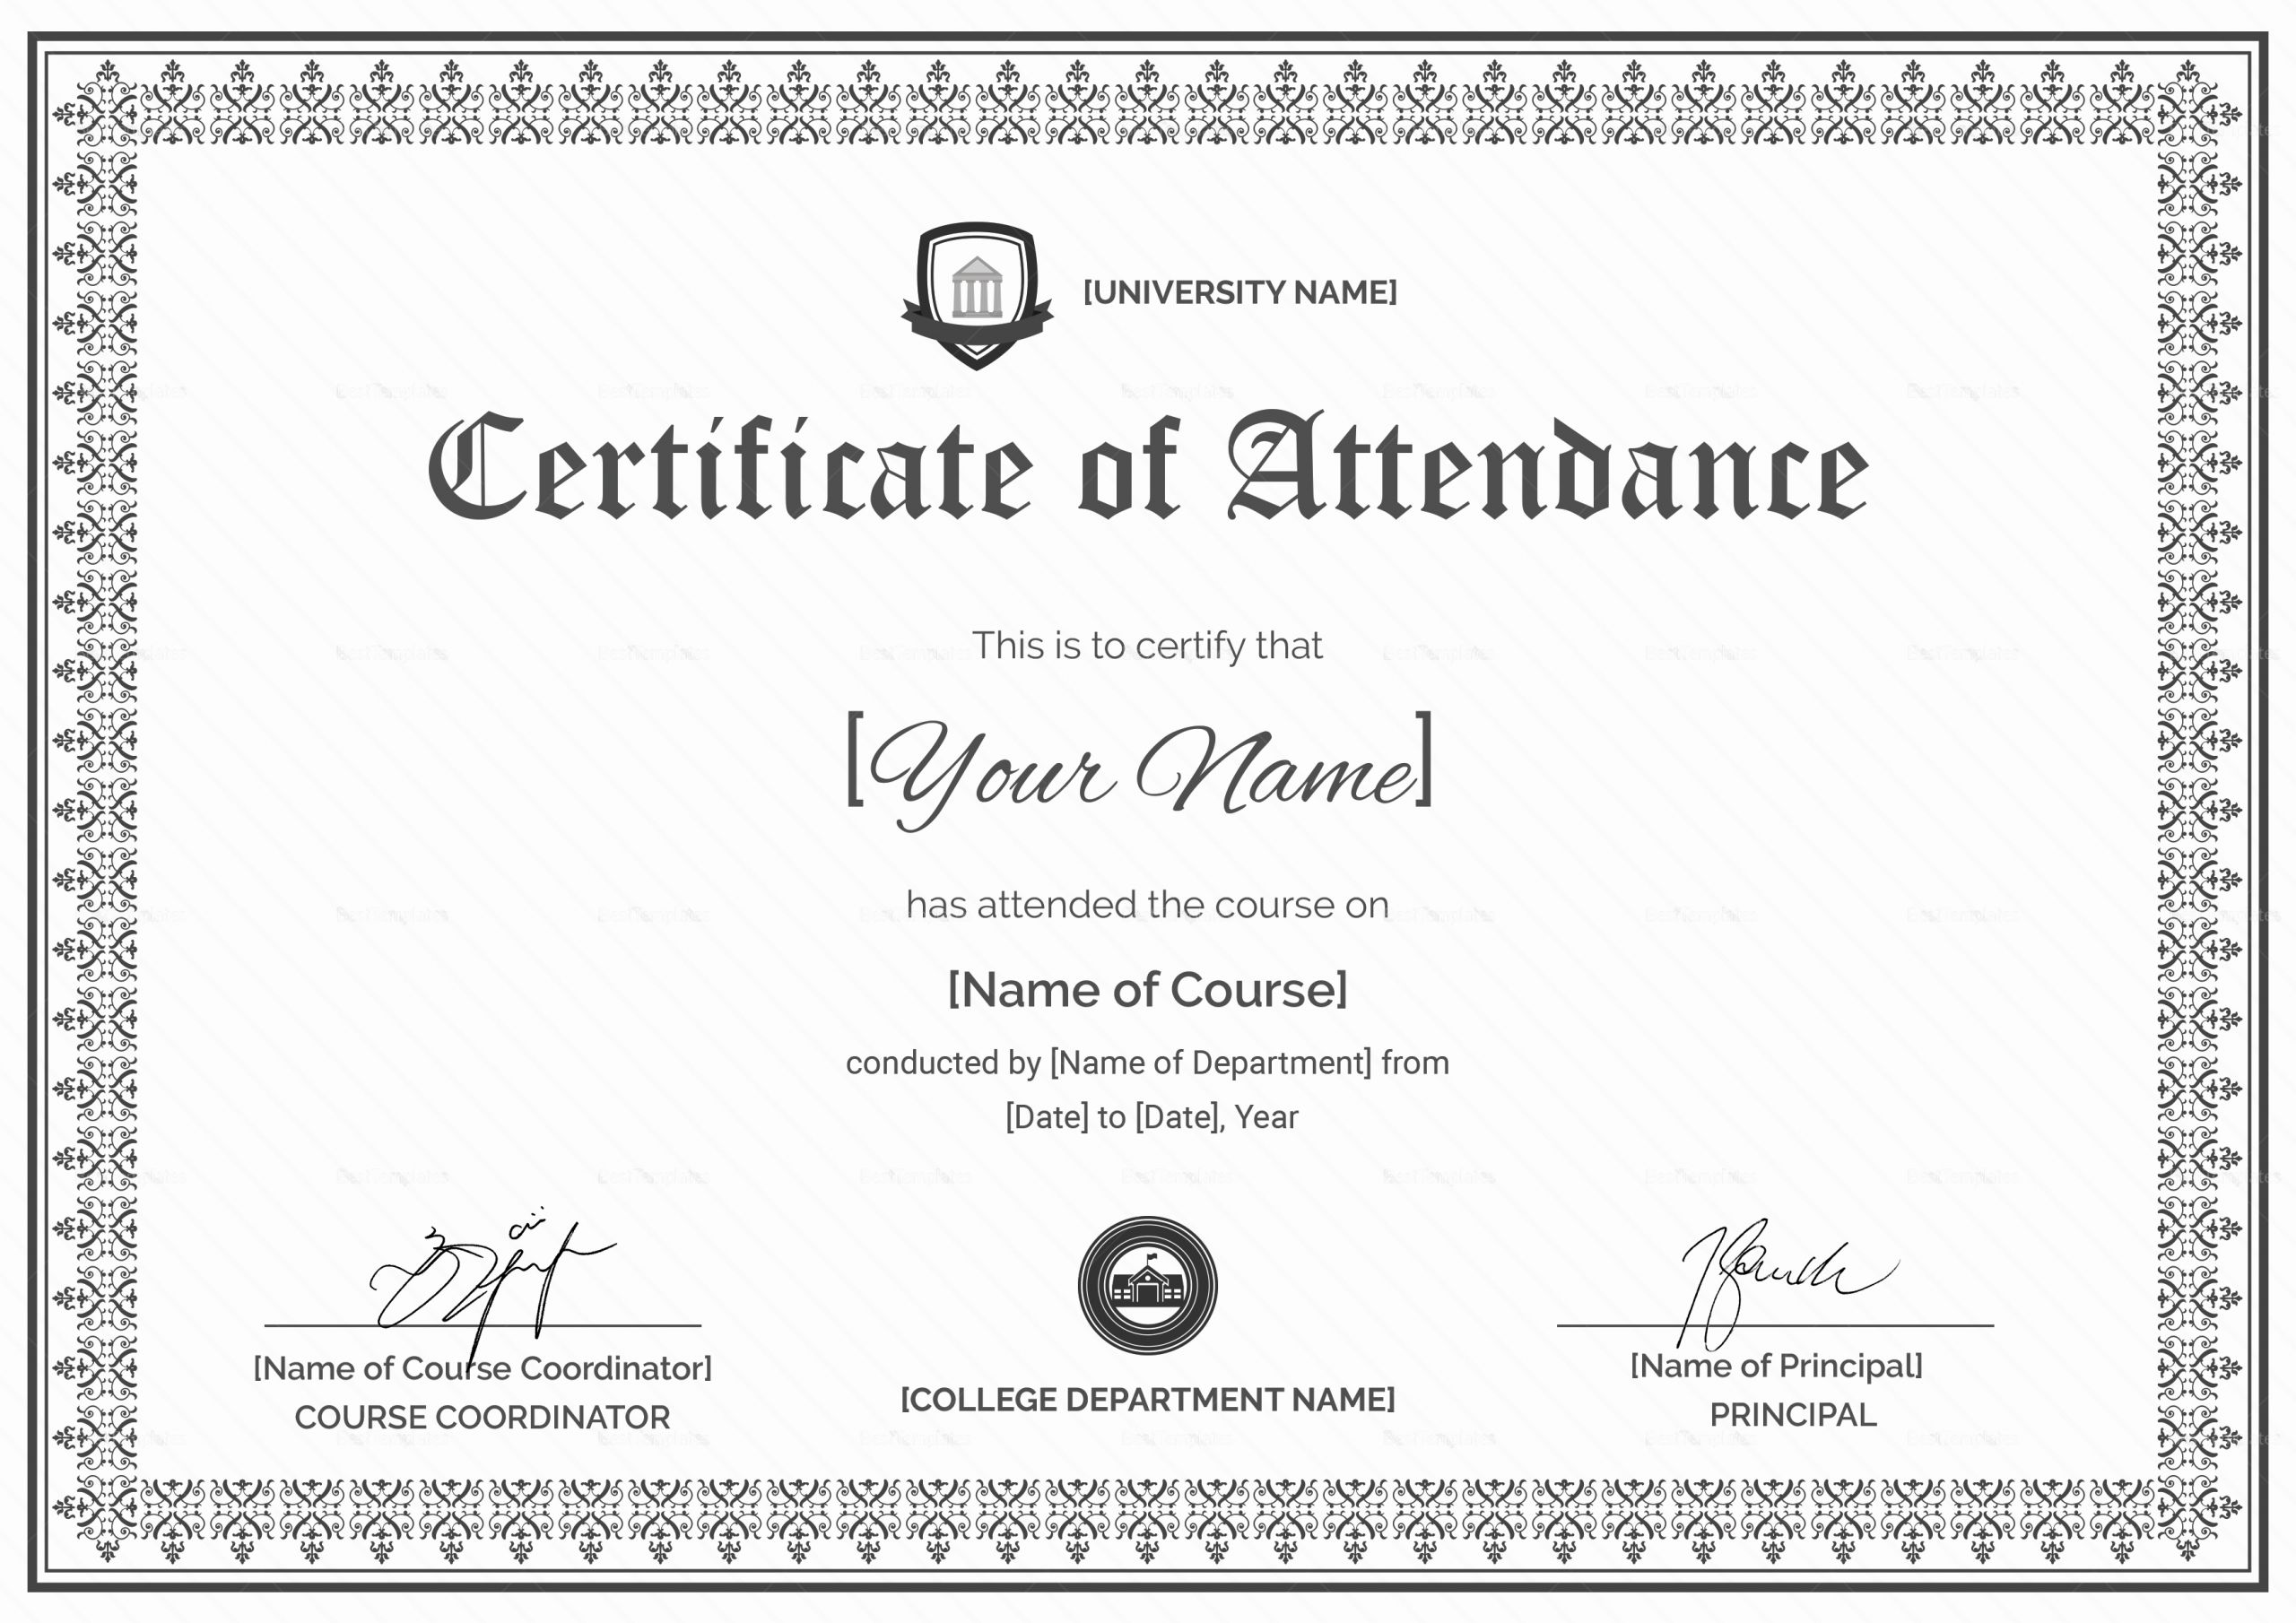 Certificate Of attendance Template Free New Course attendance Certificate Design Template In Psd Word